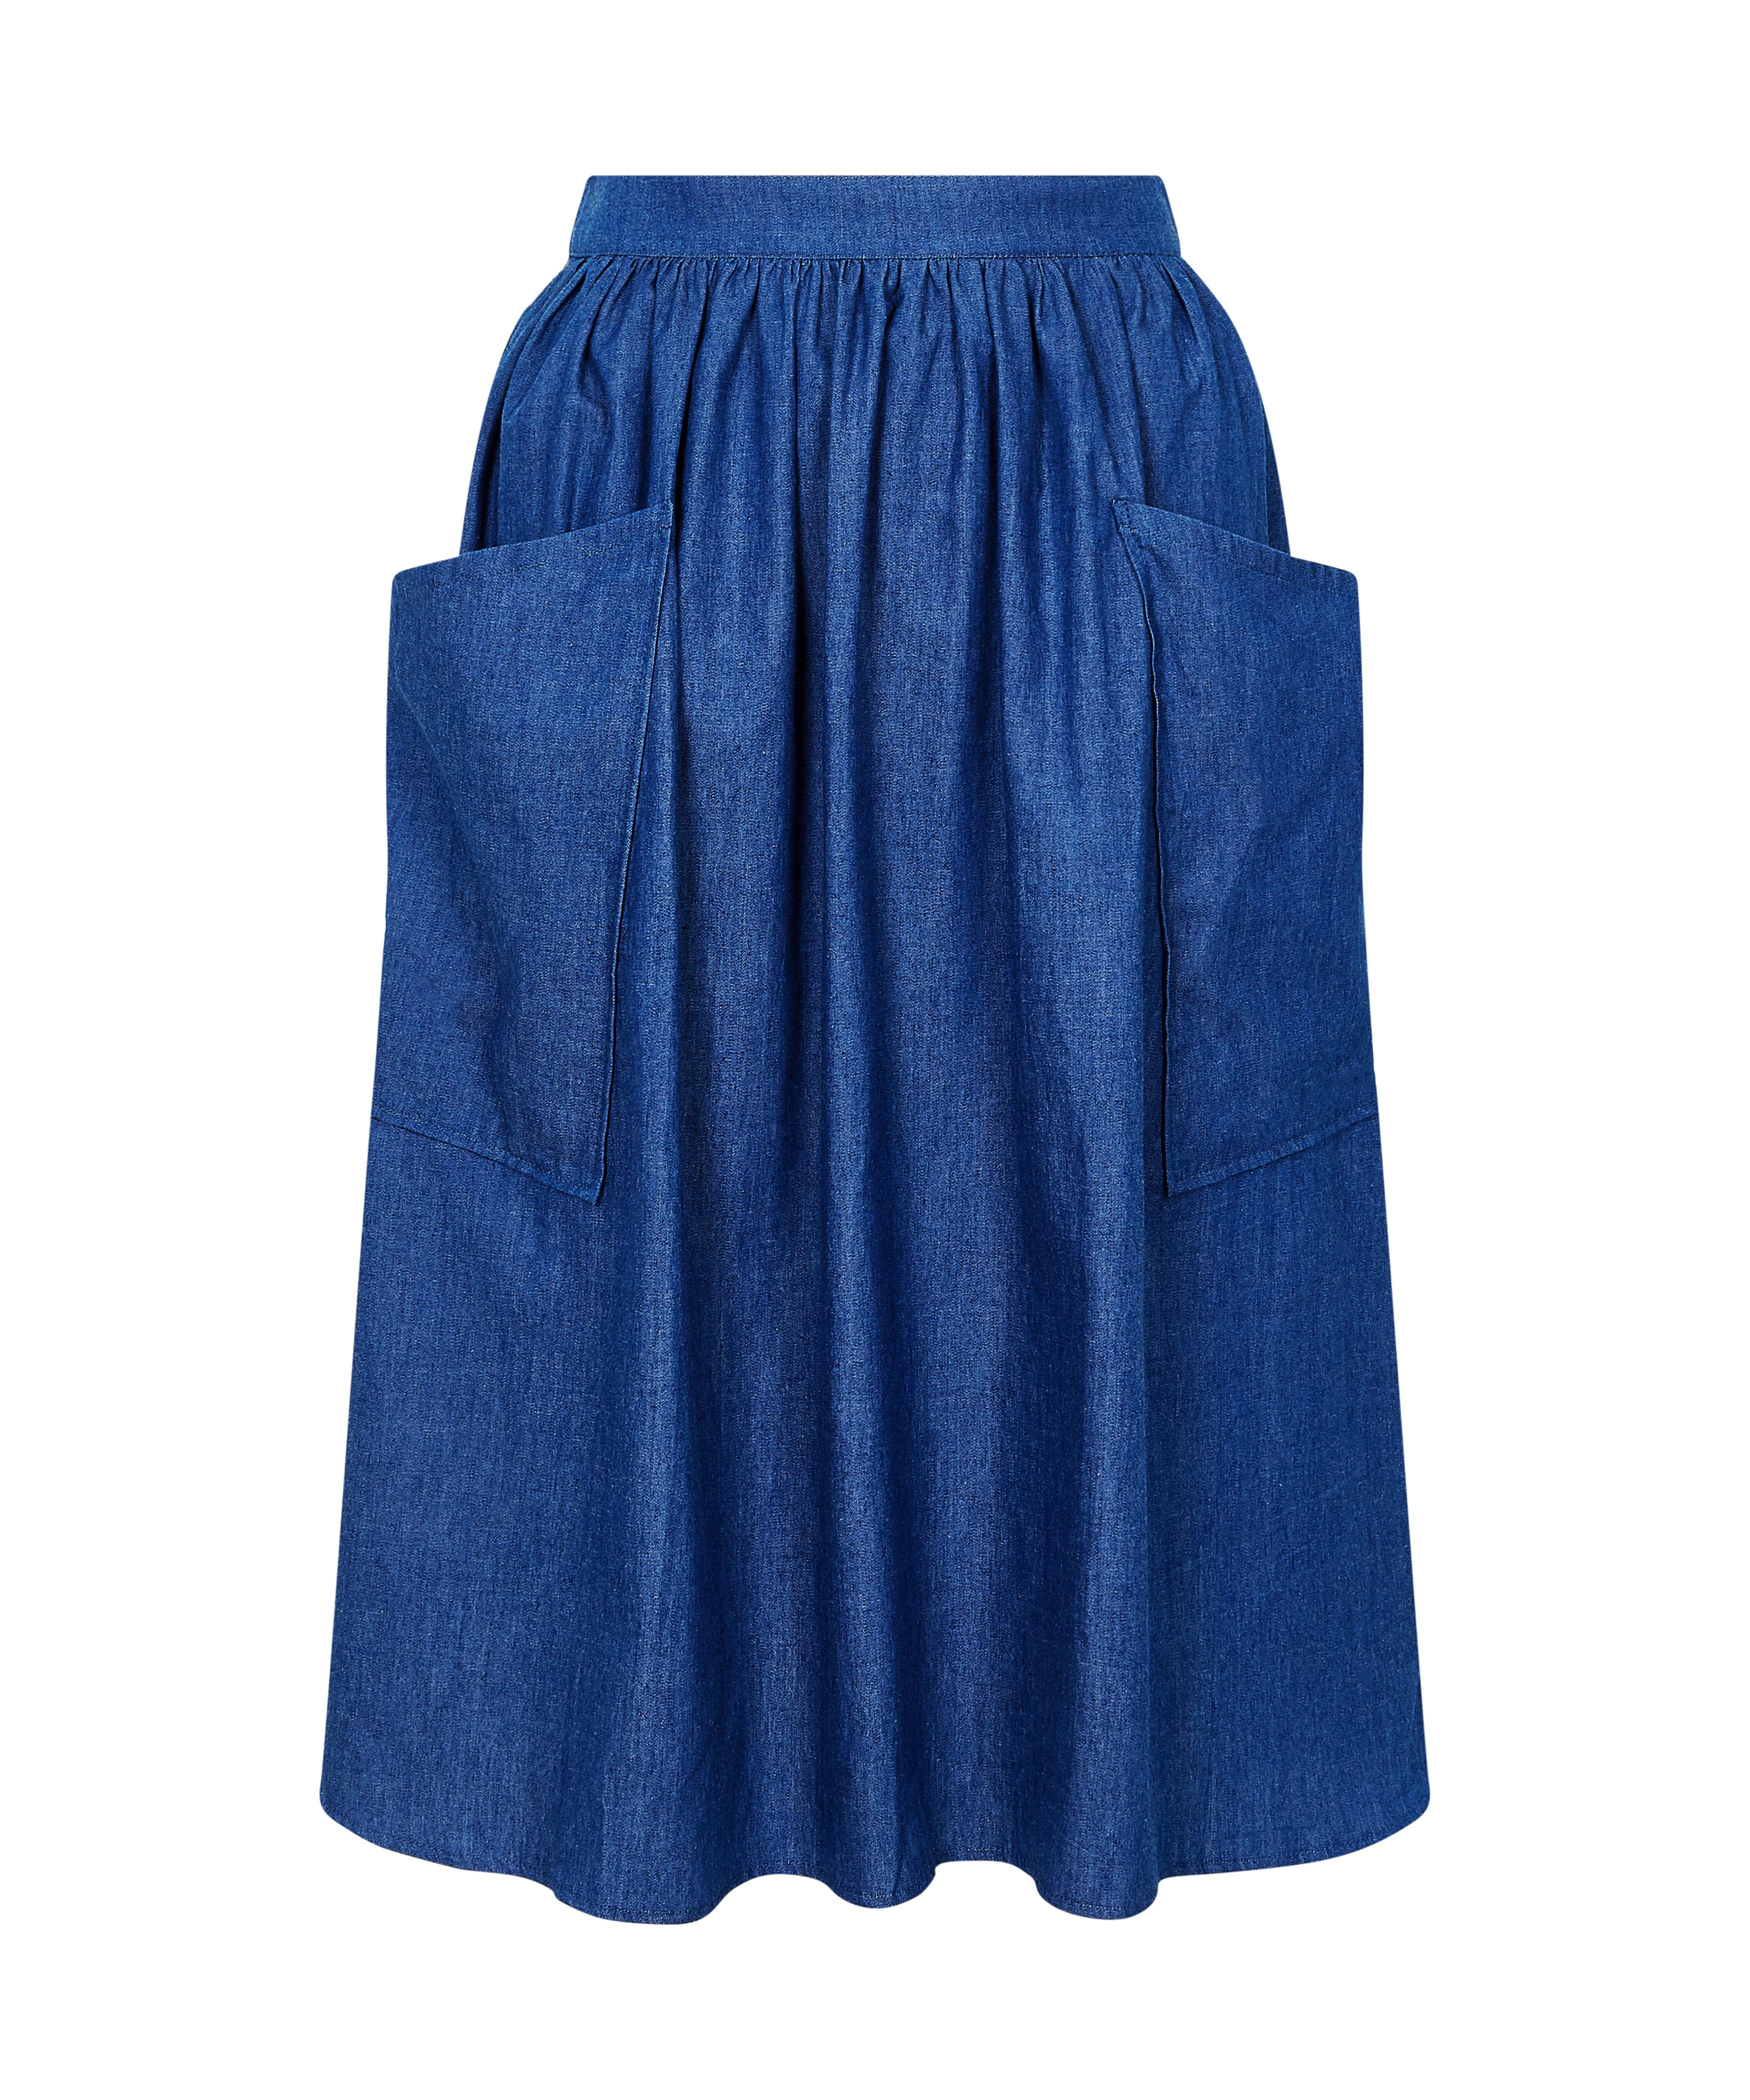 WerkHaus Margate- Chambray skirt